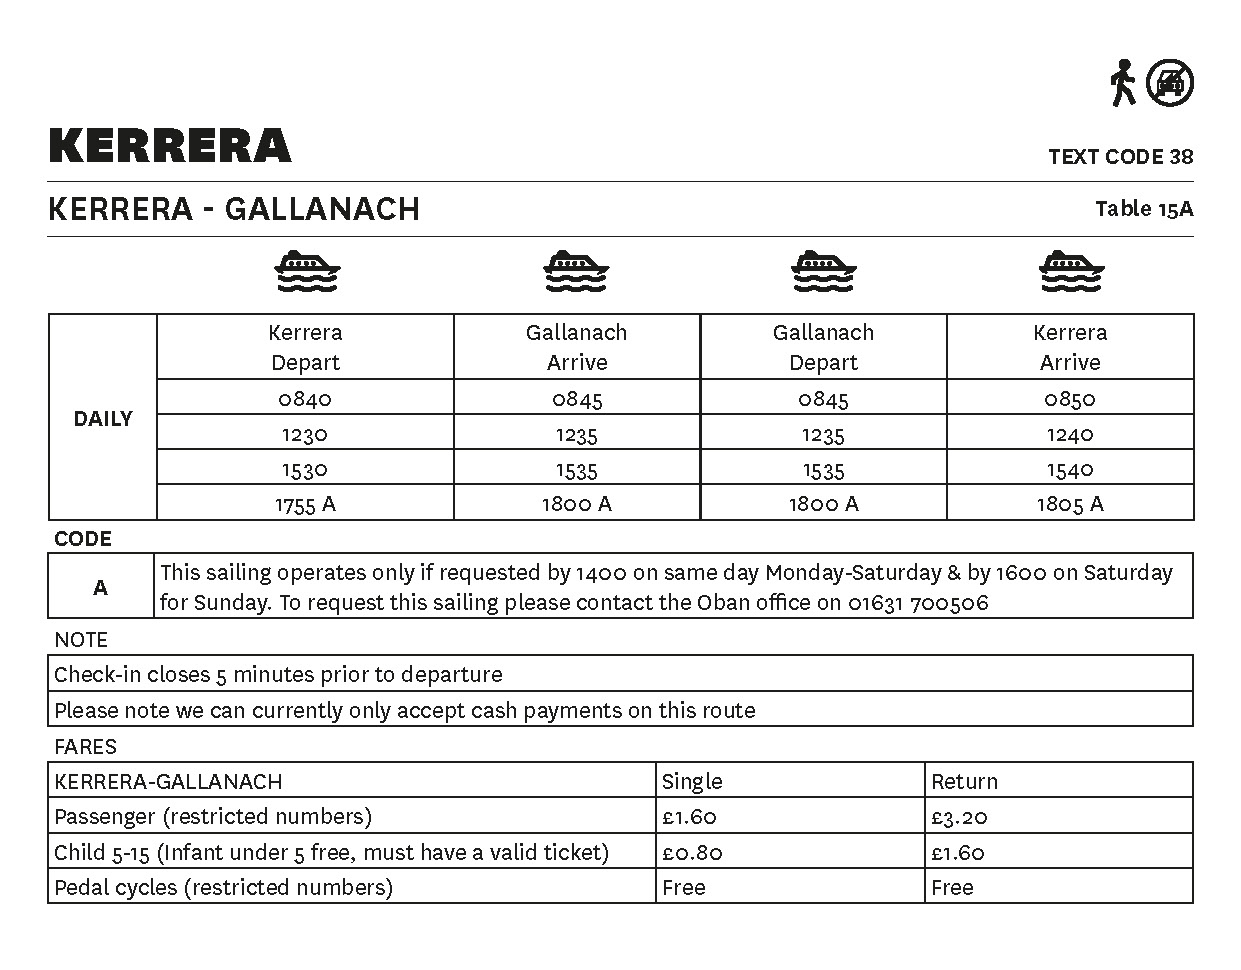 Table 15A Kerrera-Gallanach - Essential lifeline timetable - This image is currently not accessible to screen readers. Please phone 0800 066 5000 for timetable details.